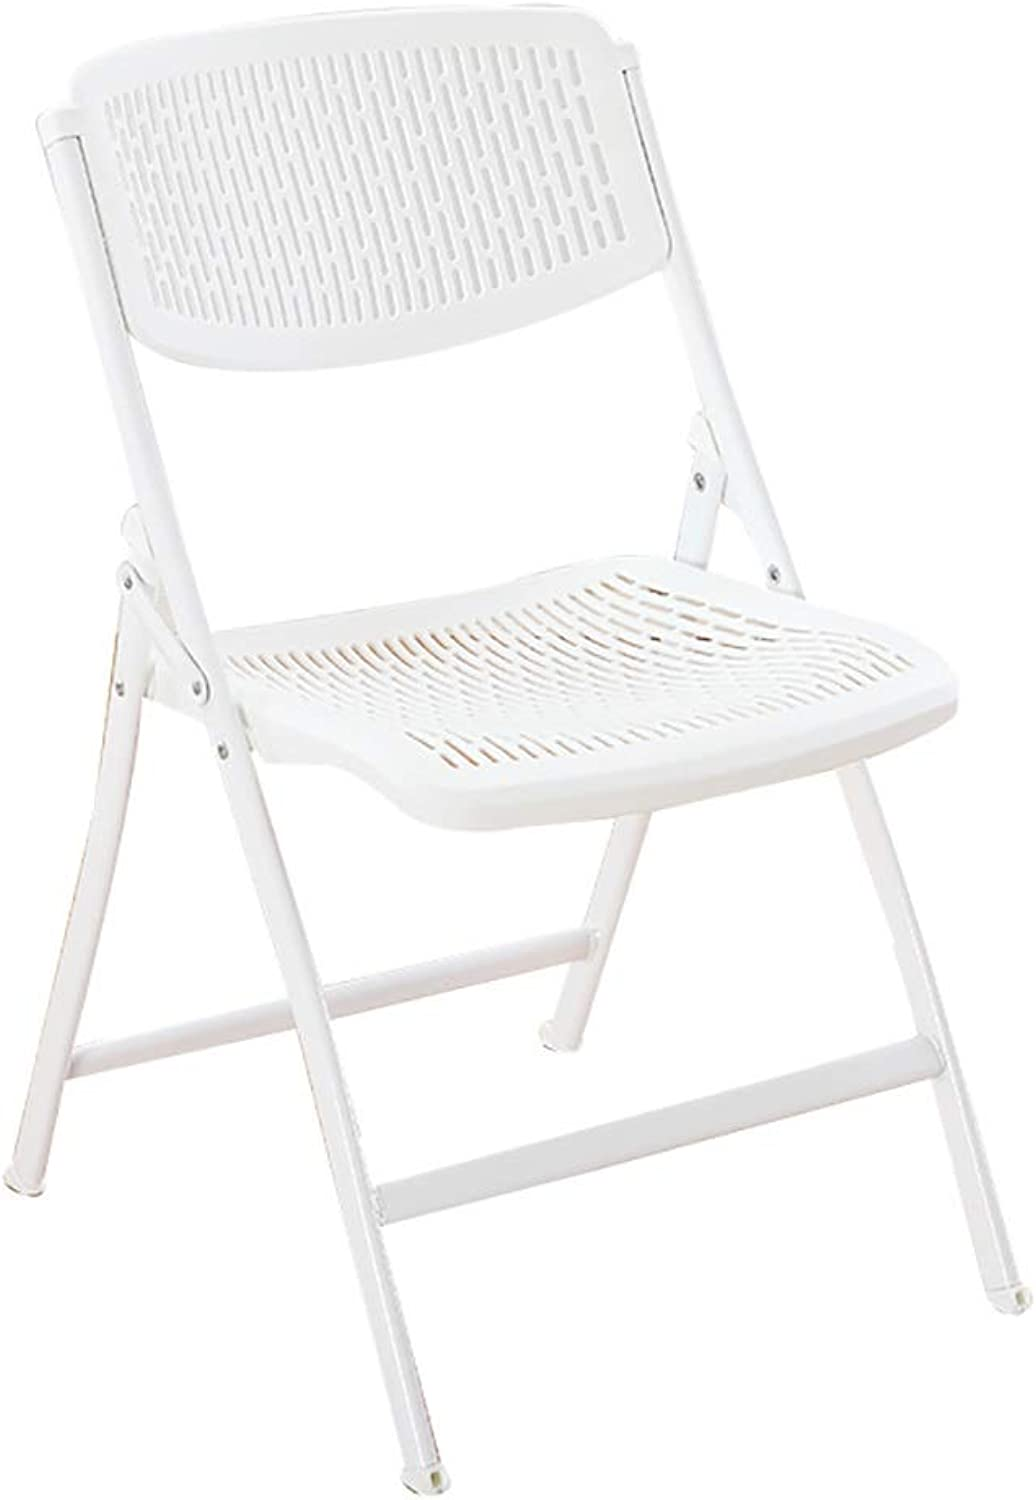 Folding Chair Home Chair Student Dormitory Computer Chair Leisure Chair Simple Office Chair Conference Chair Stool Chair (color   White)